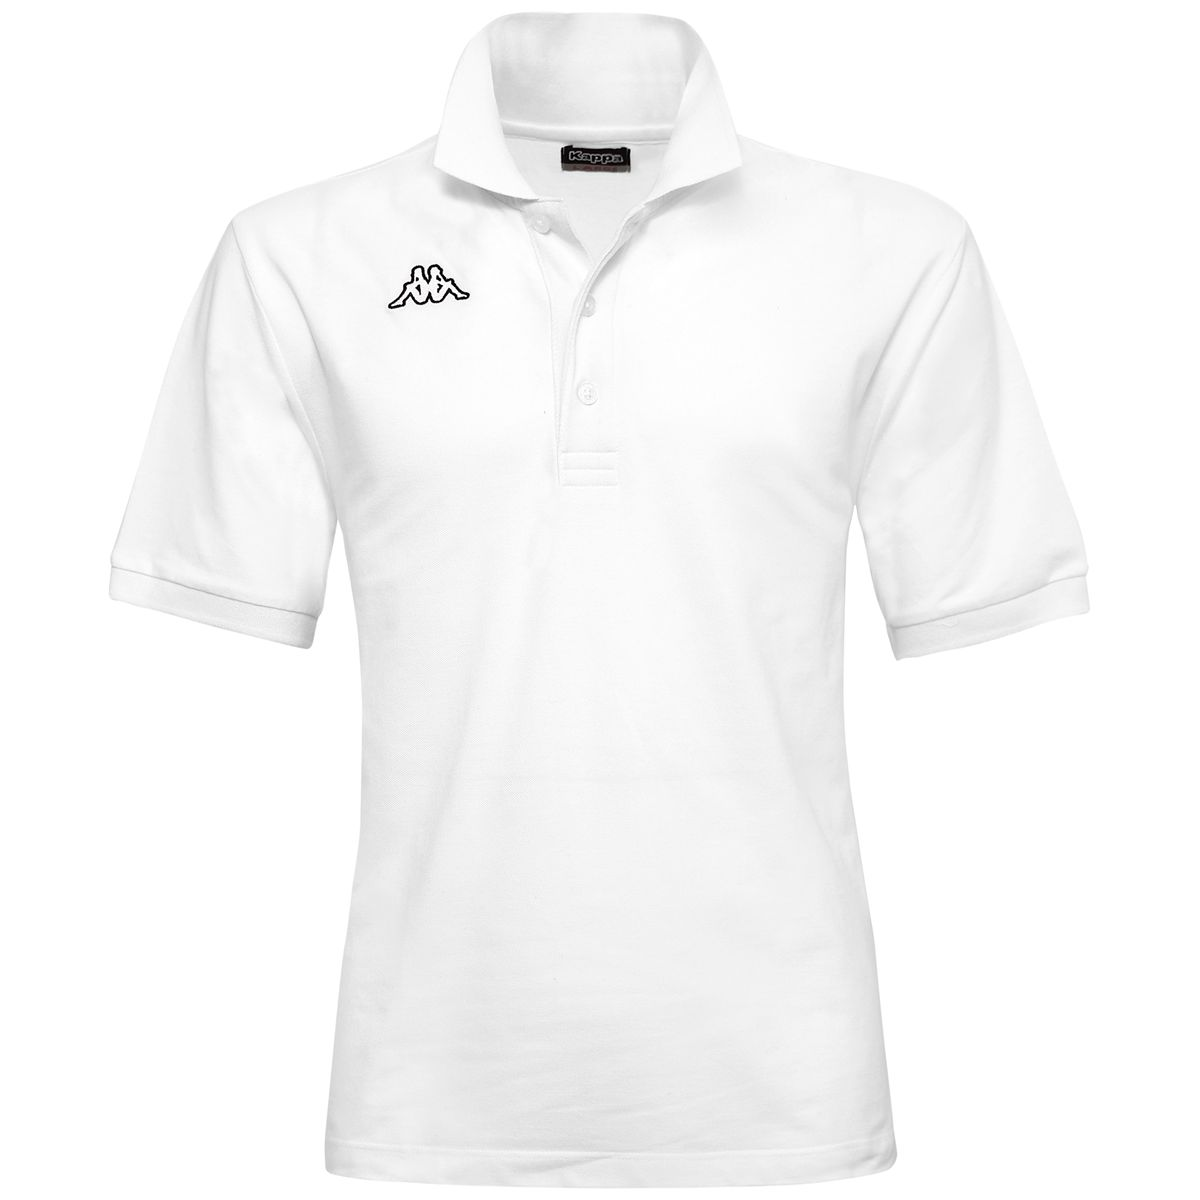 Kappa POLO SHIRTS LOGO SHARAS MSS Boy Polo